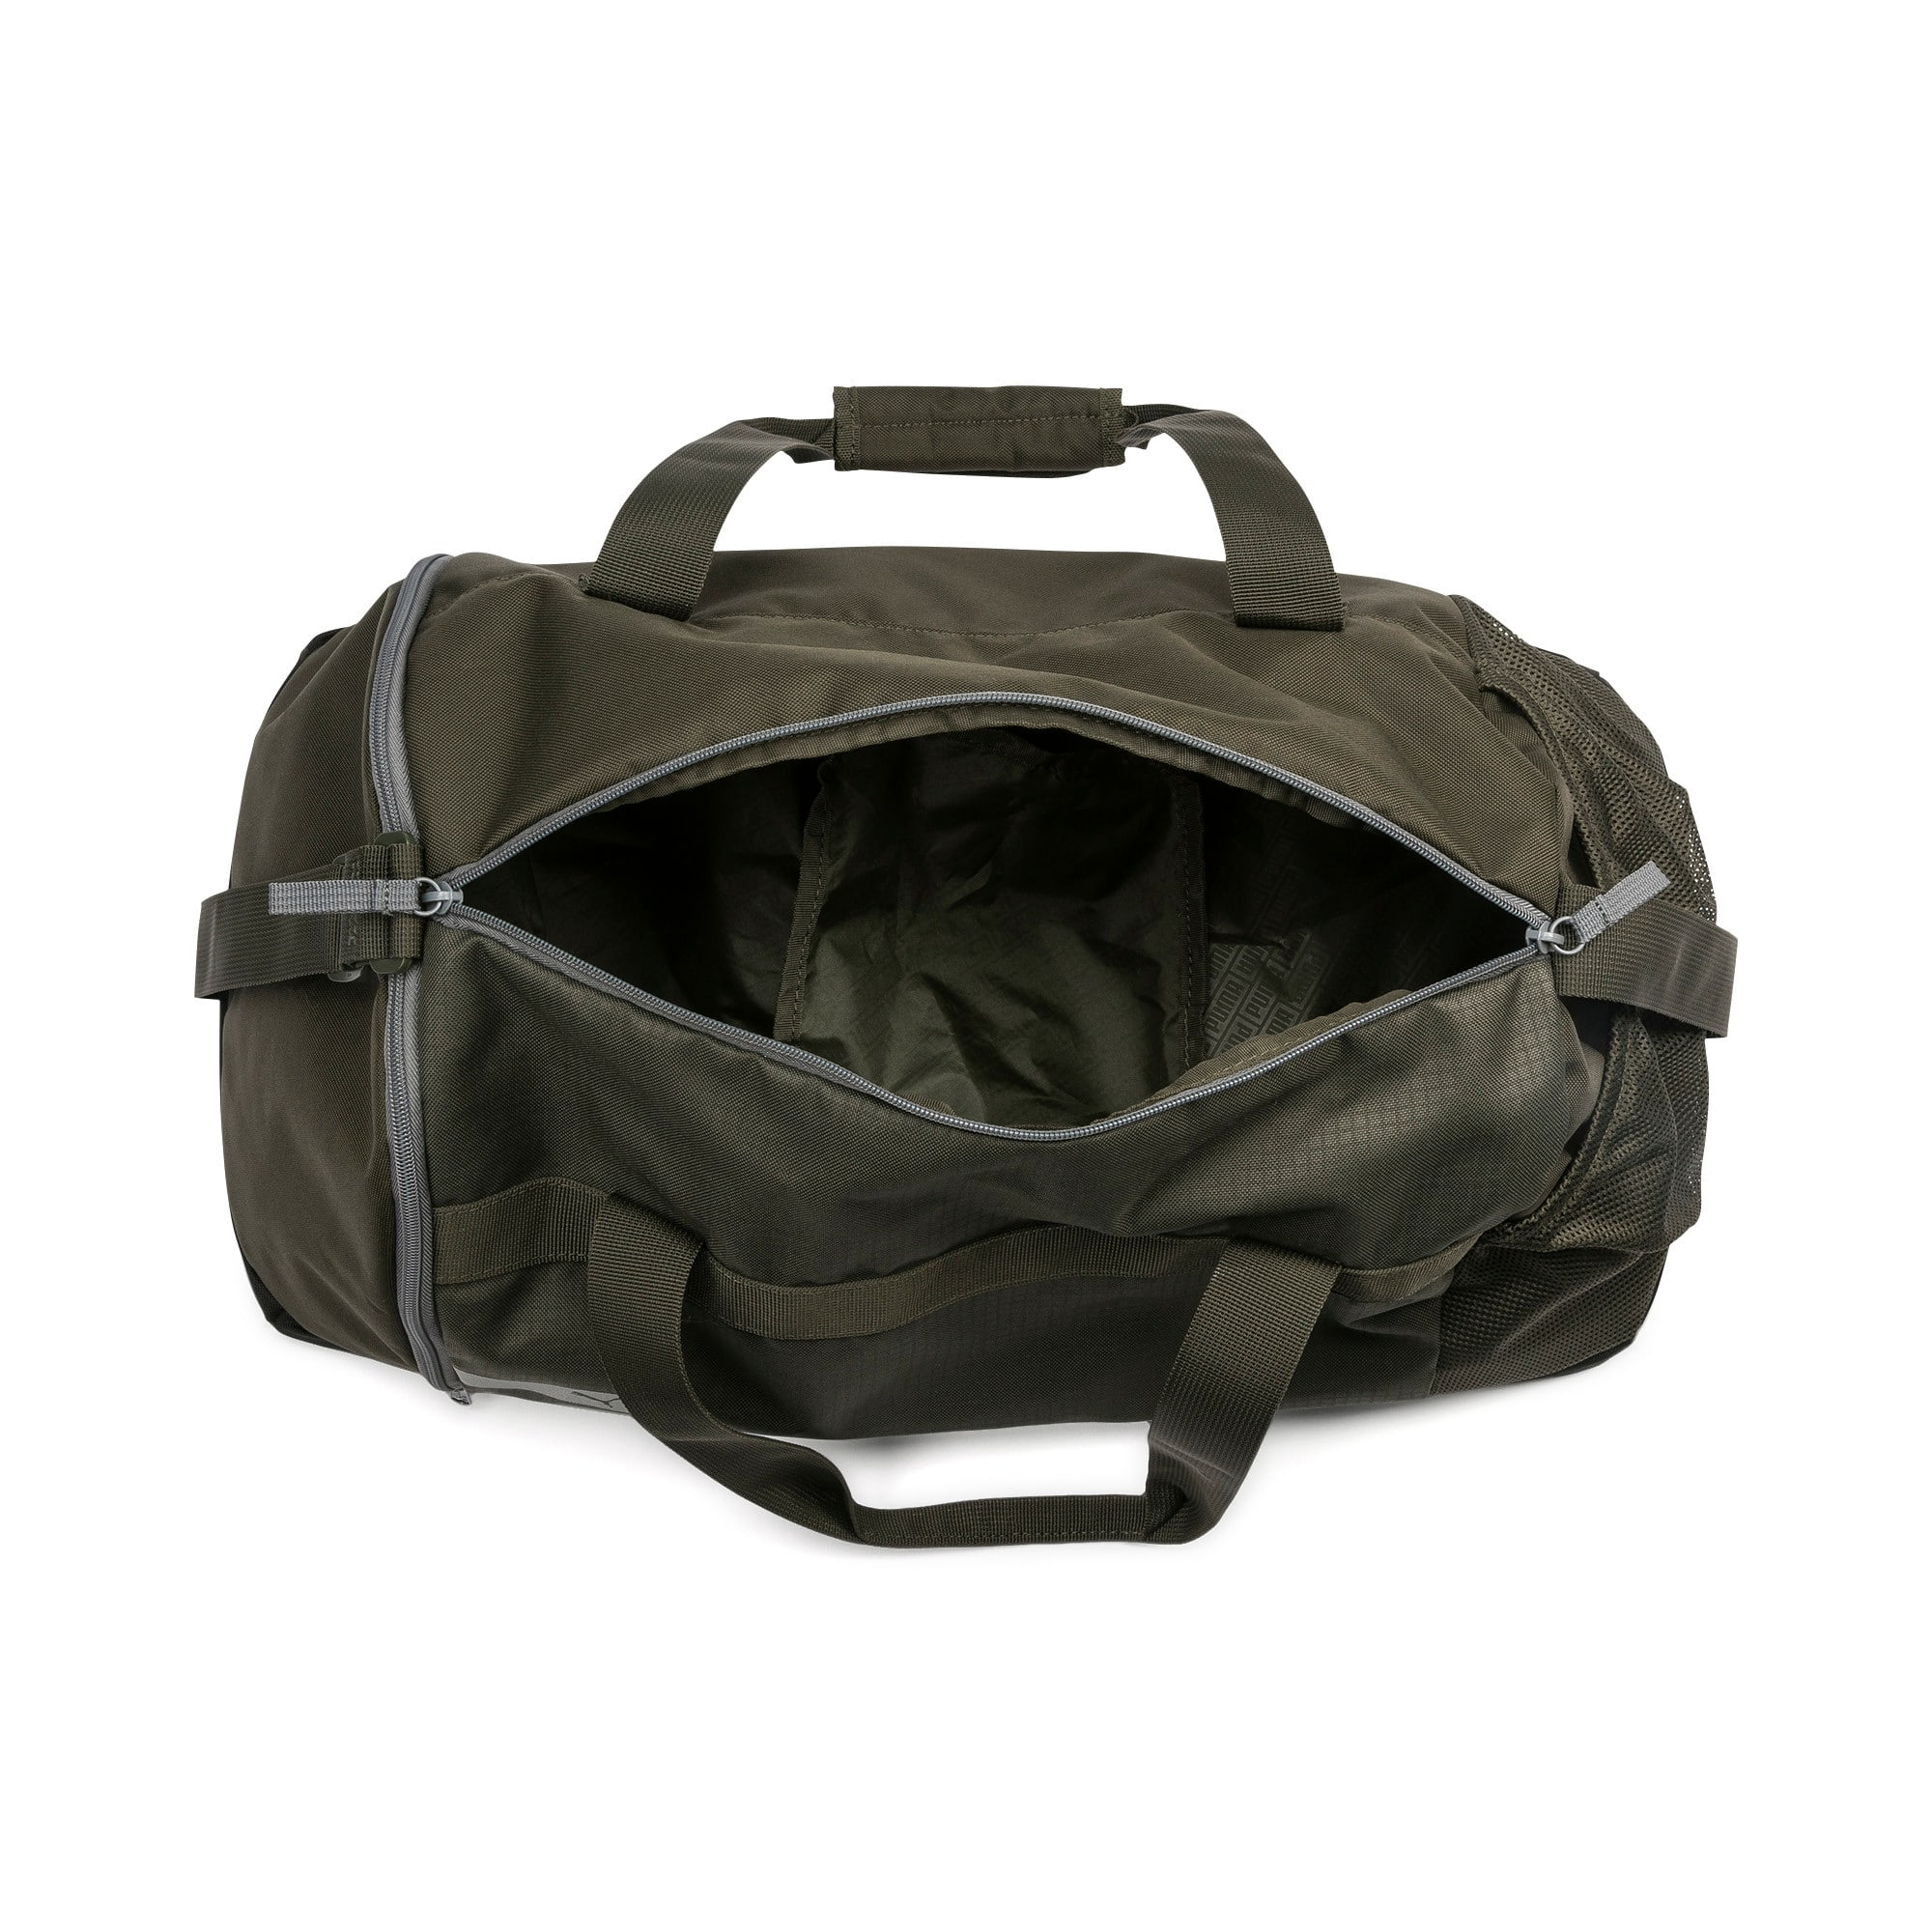 Thumbnail 3 of PUMA Vibe Gym Bag, Forest Night, medium-IND